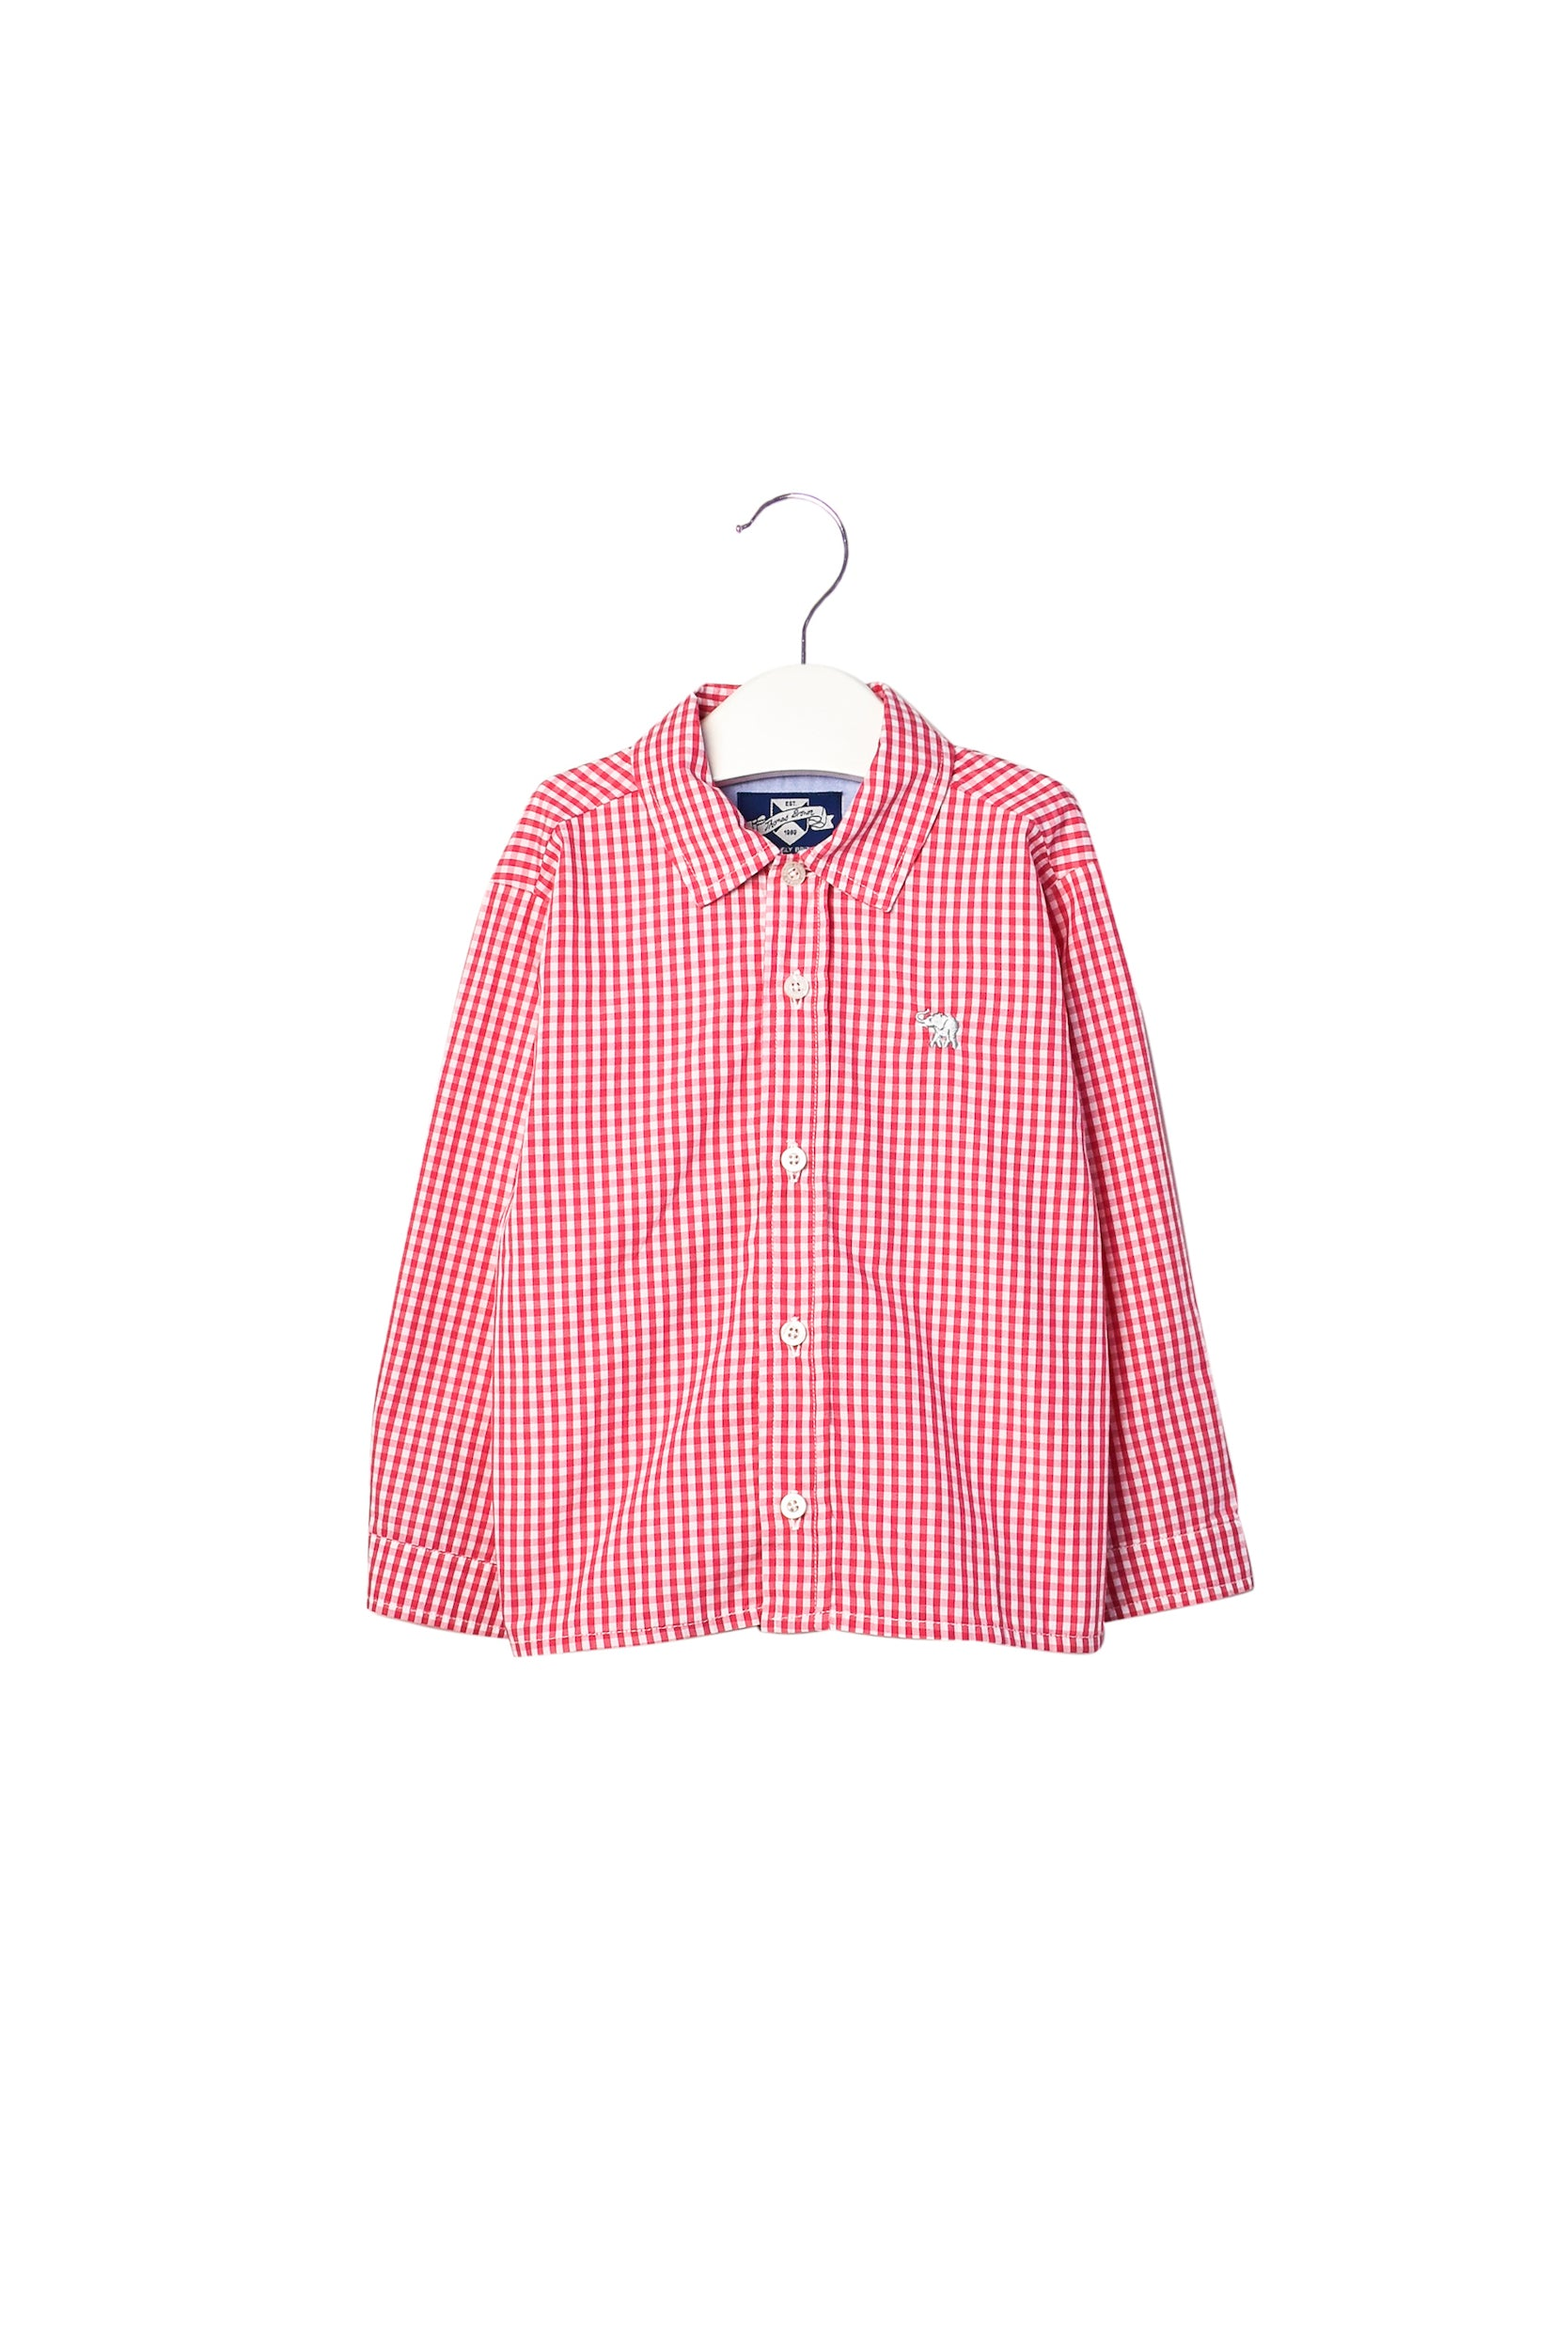 10007566 Thomas Brown Baby ~ Shirt 24M at Retykle